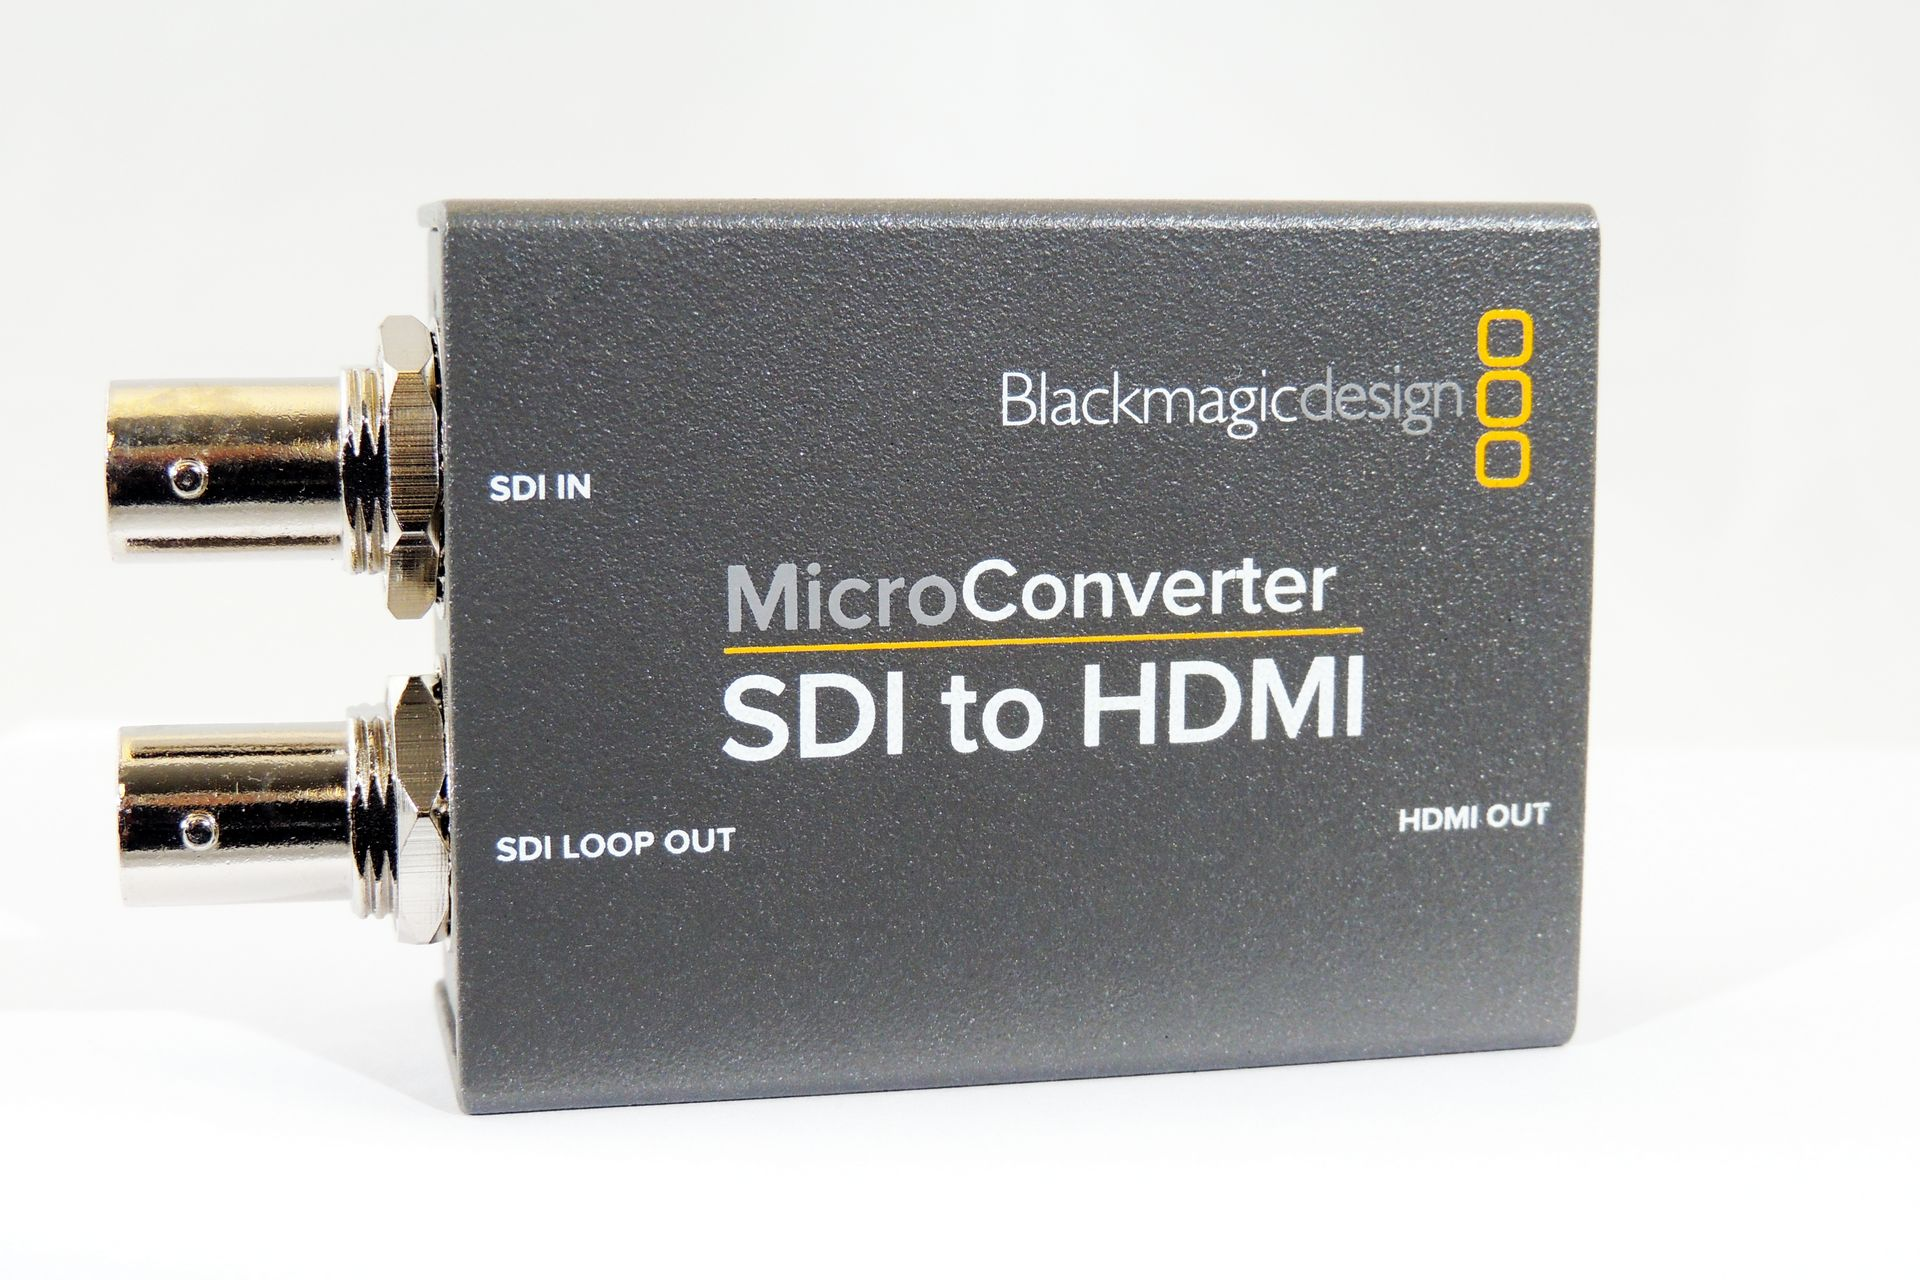 BLACK MAGIC DESIGN MICRO CONVERTER SDI – HDMI